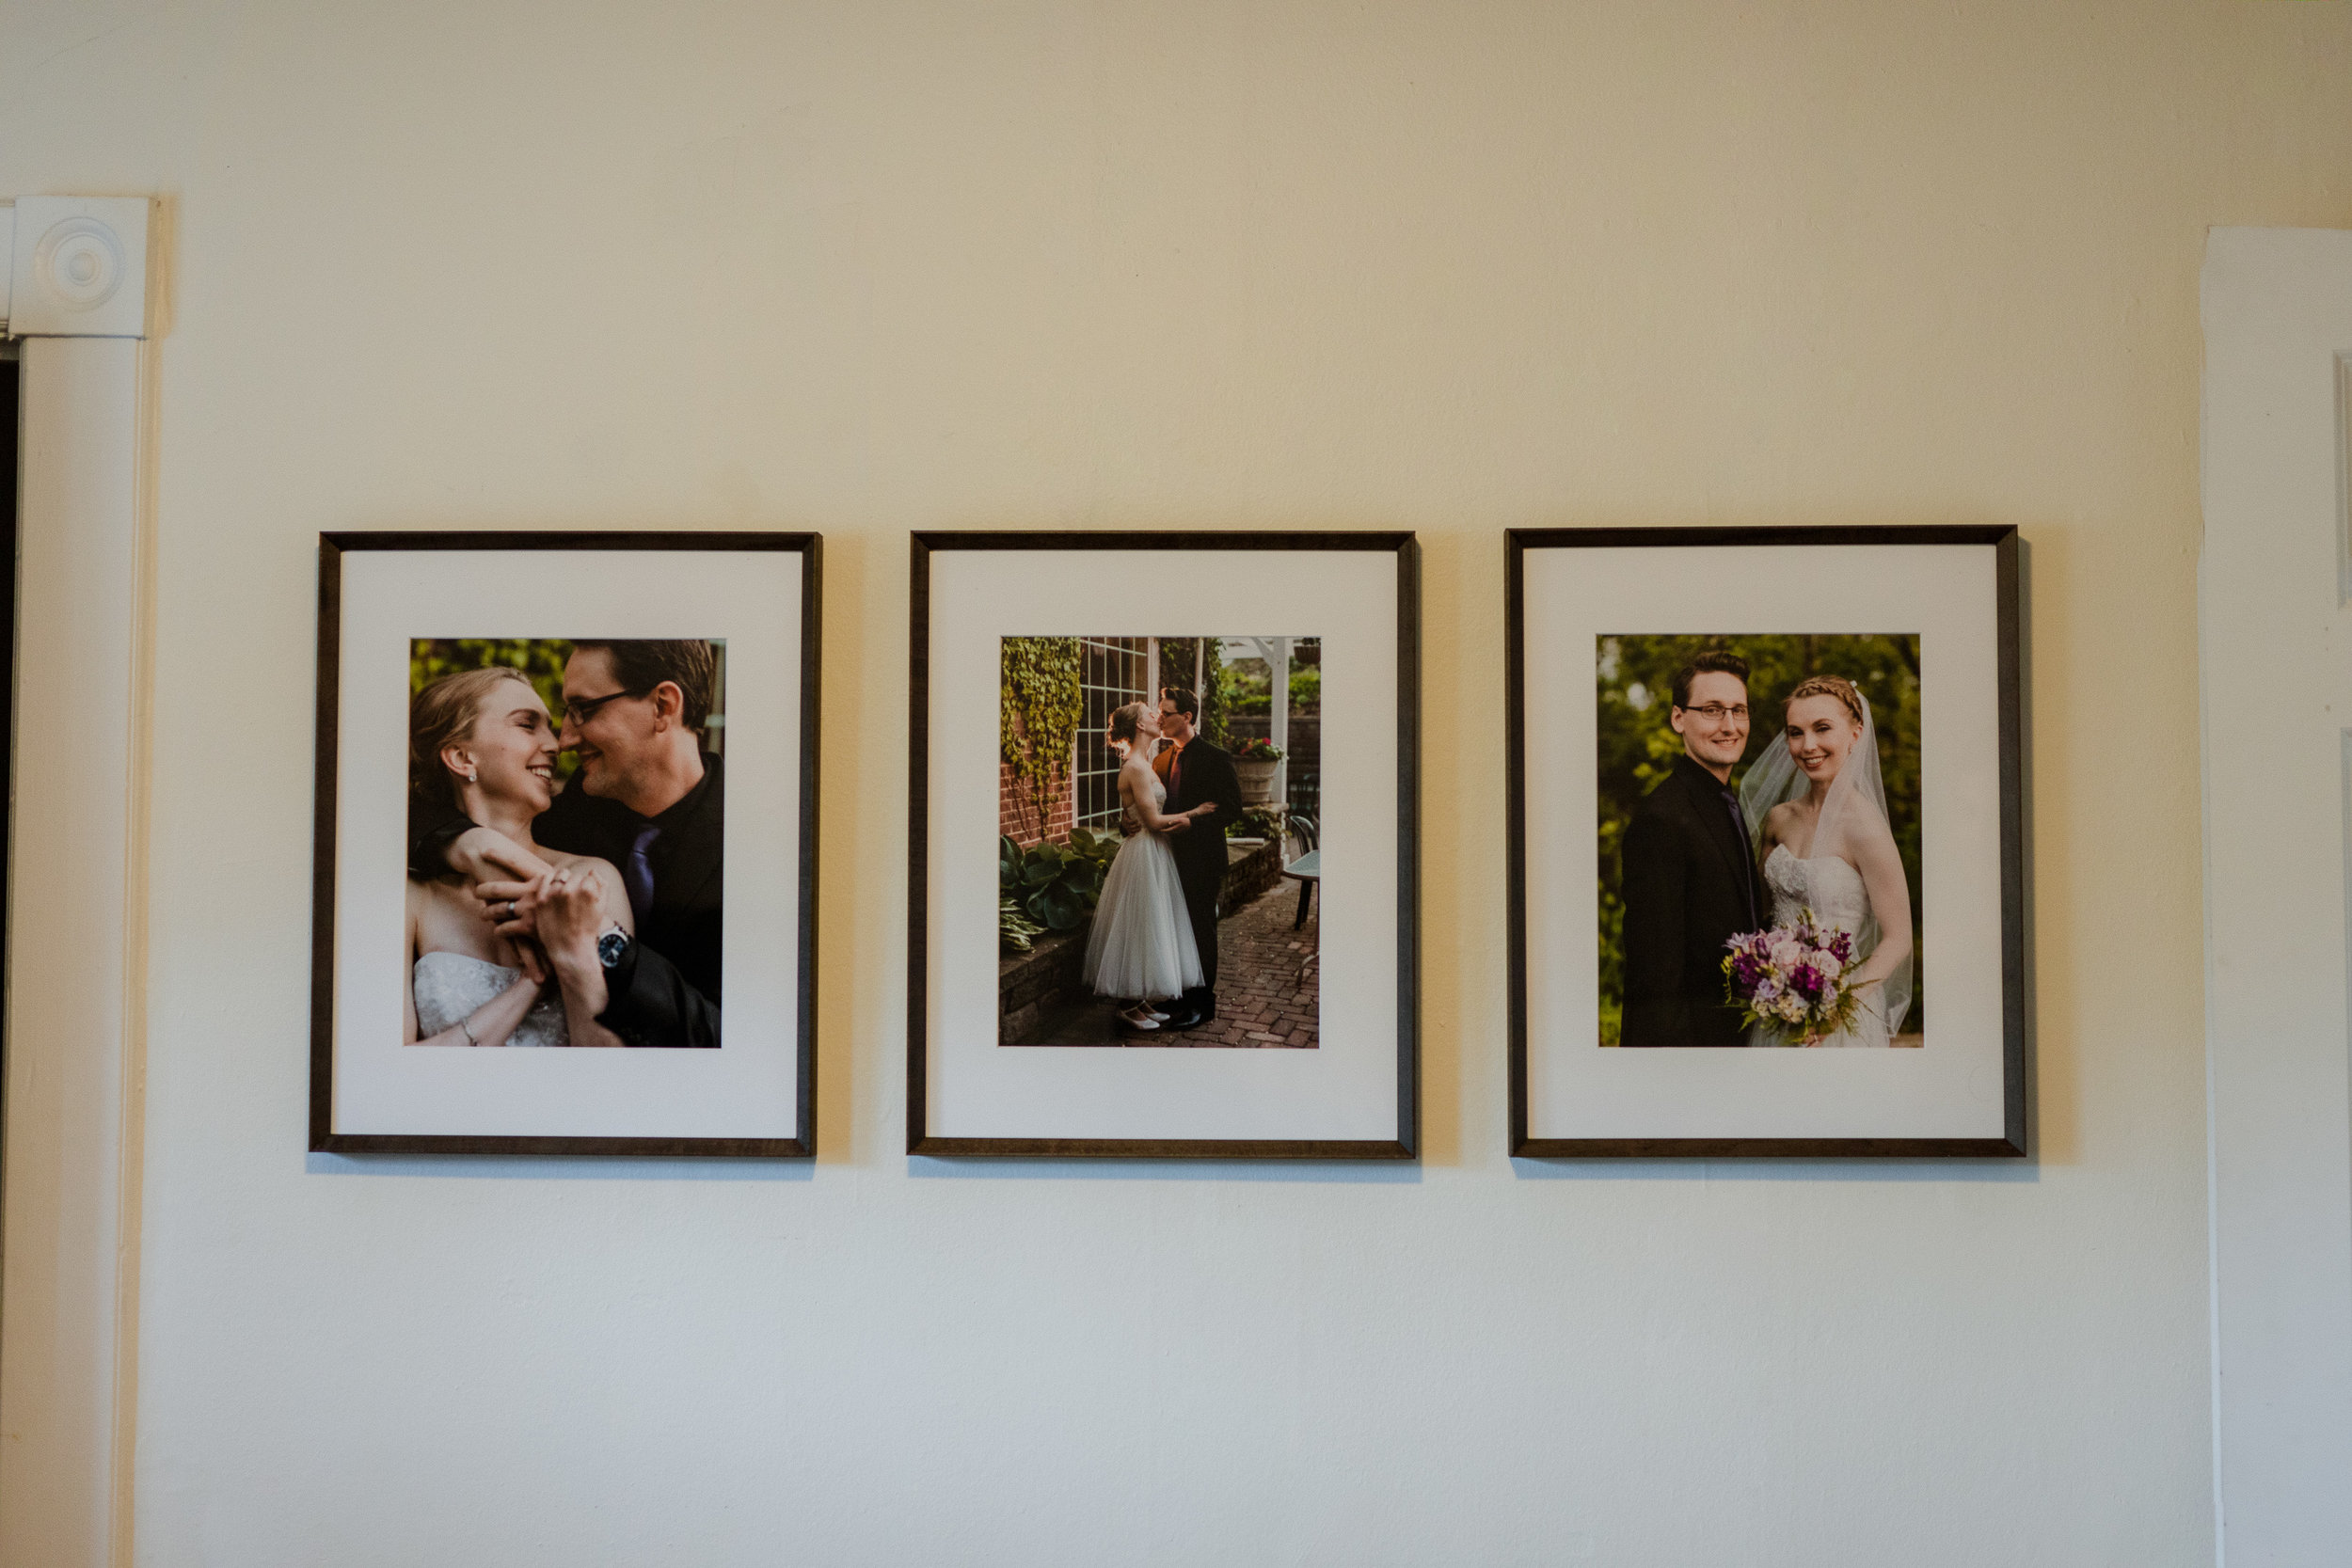 Alyssa Lund Photography wedding frames-1.jpg